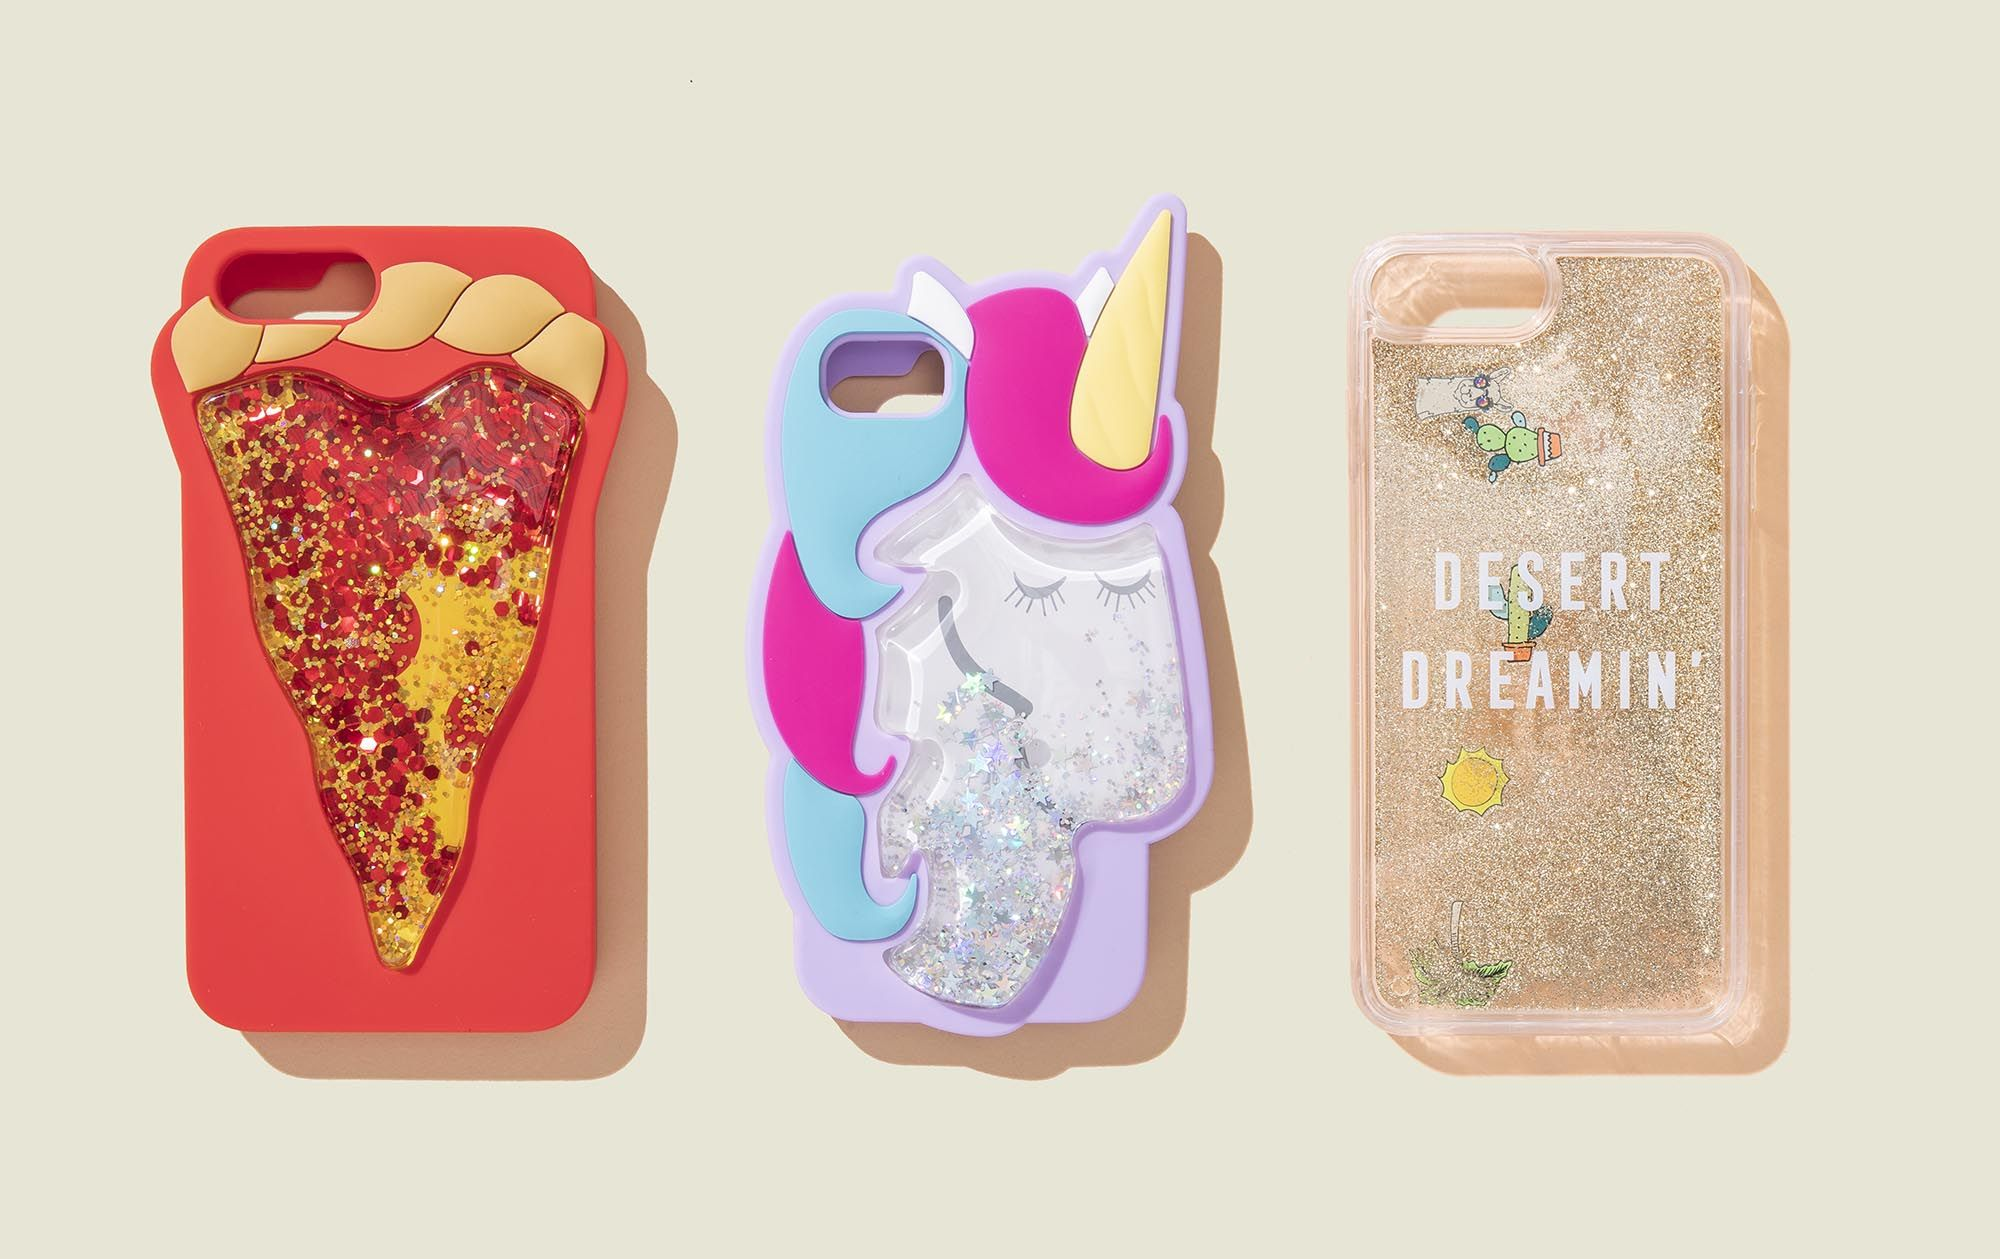 Set of phone cases